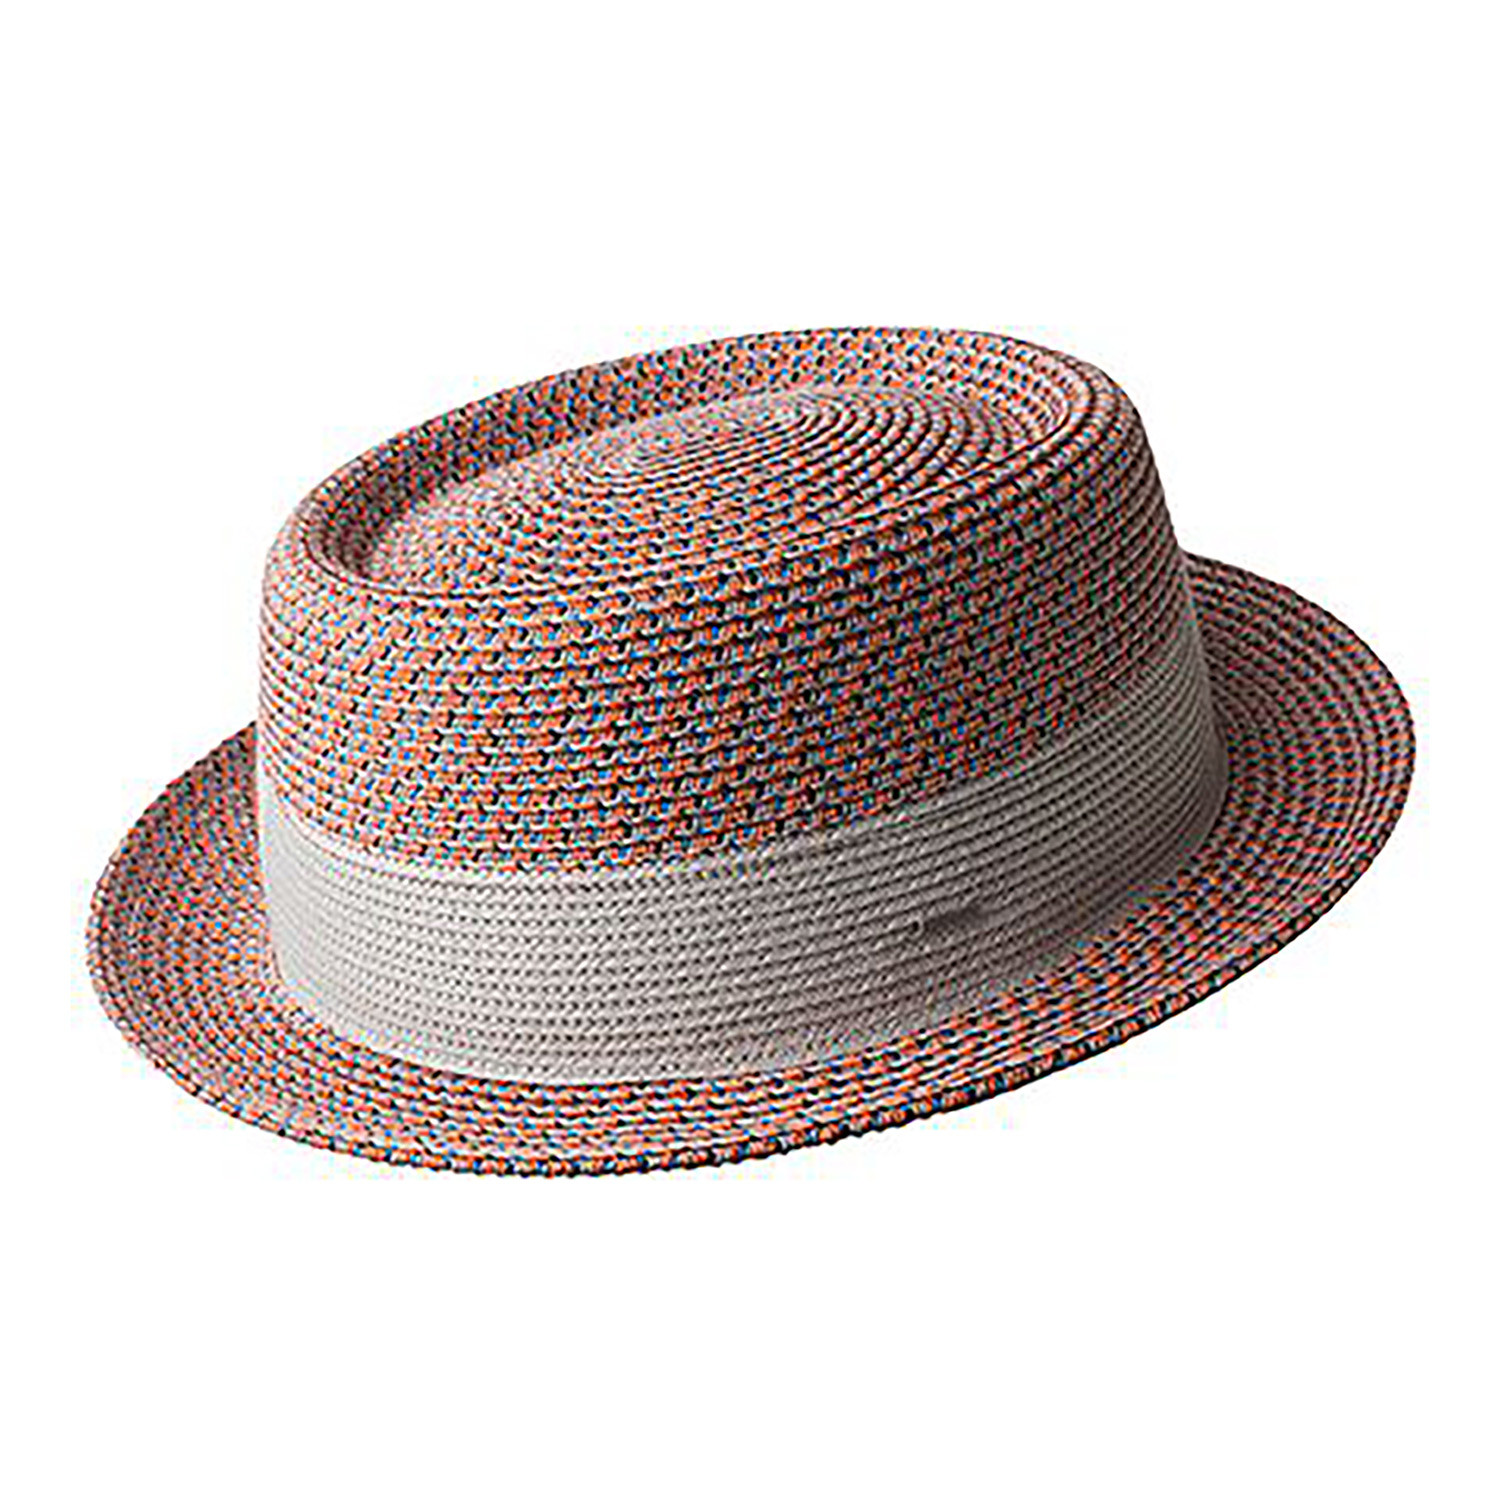 fb31de6d257 Telemannes    Reef Multi (S) - Bailey Hat Company - Touch of Modern